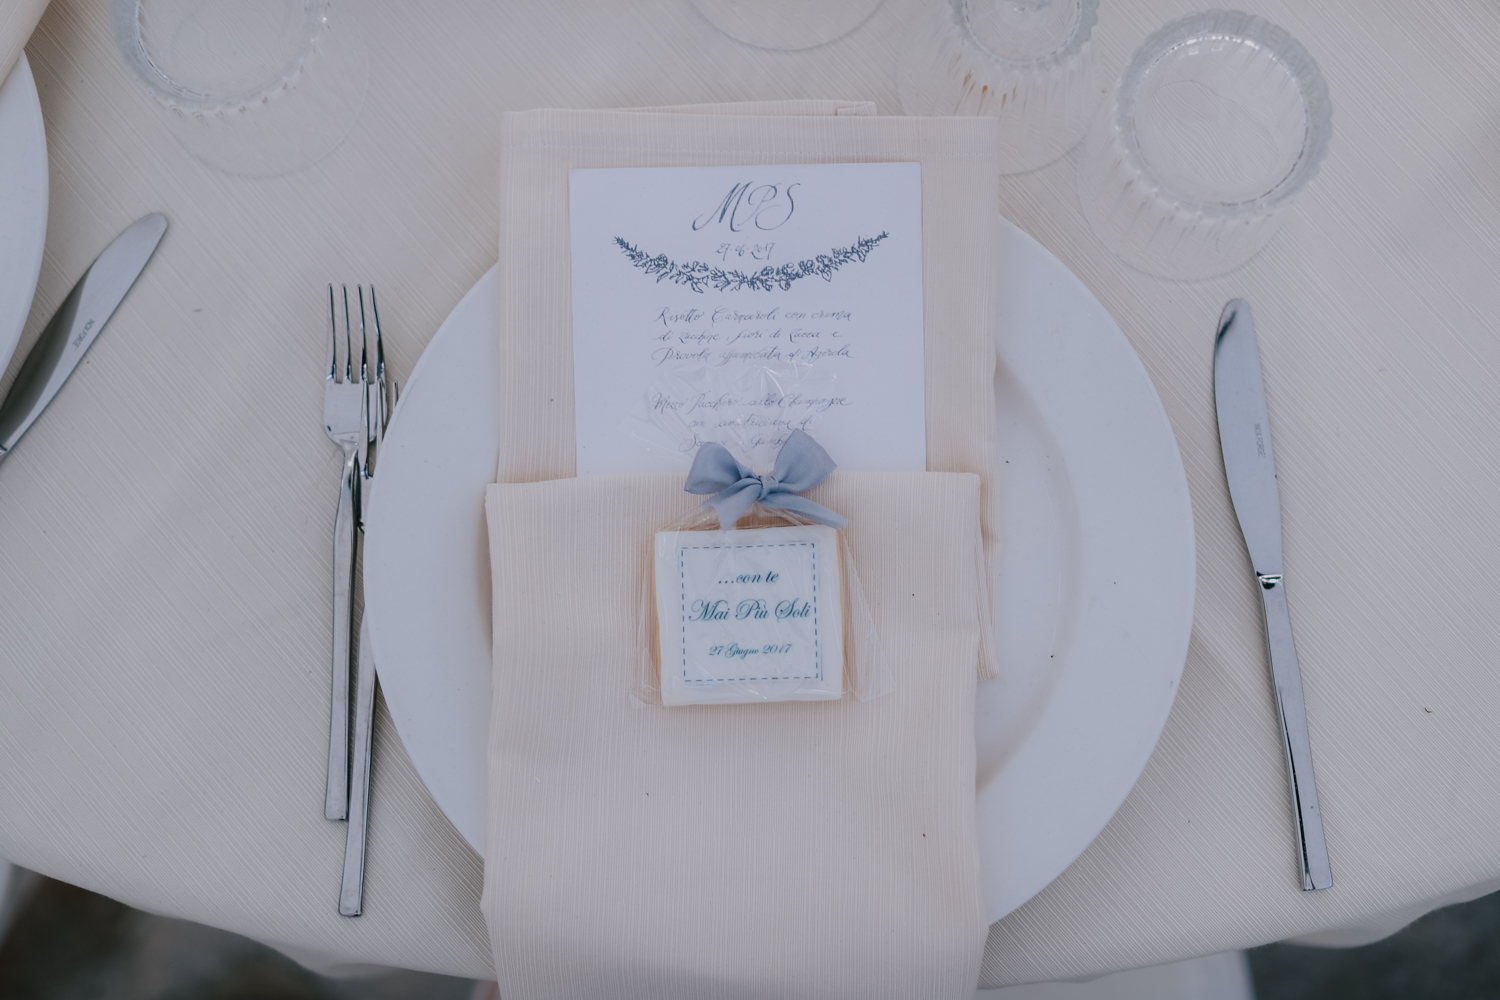 https://www.weddingamalfi.com/wp-content/uploads/Alessandro-and-Diego-wedding-place-card-and-menu.jpg